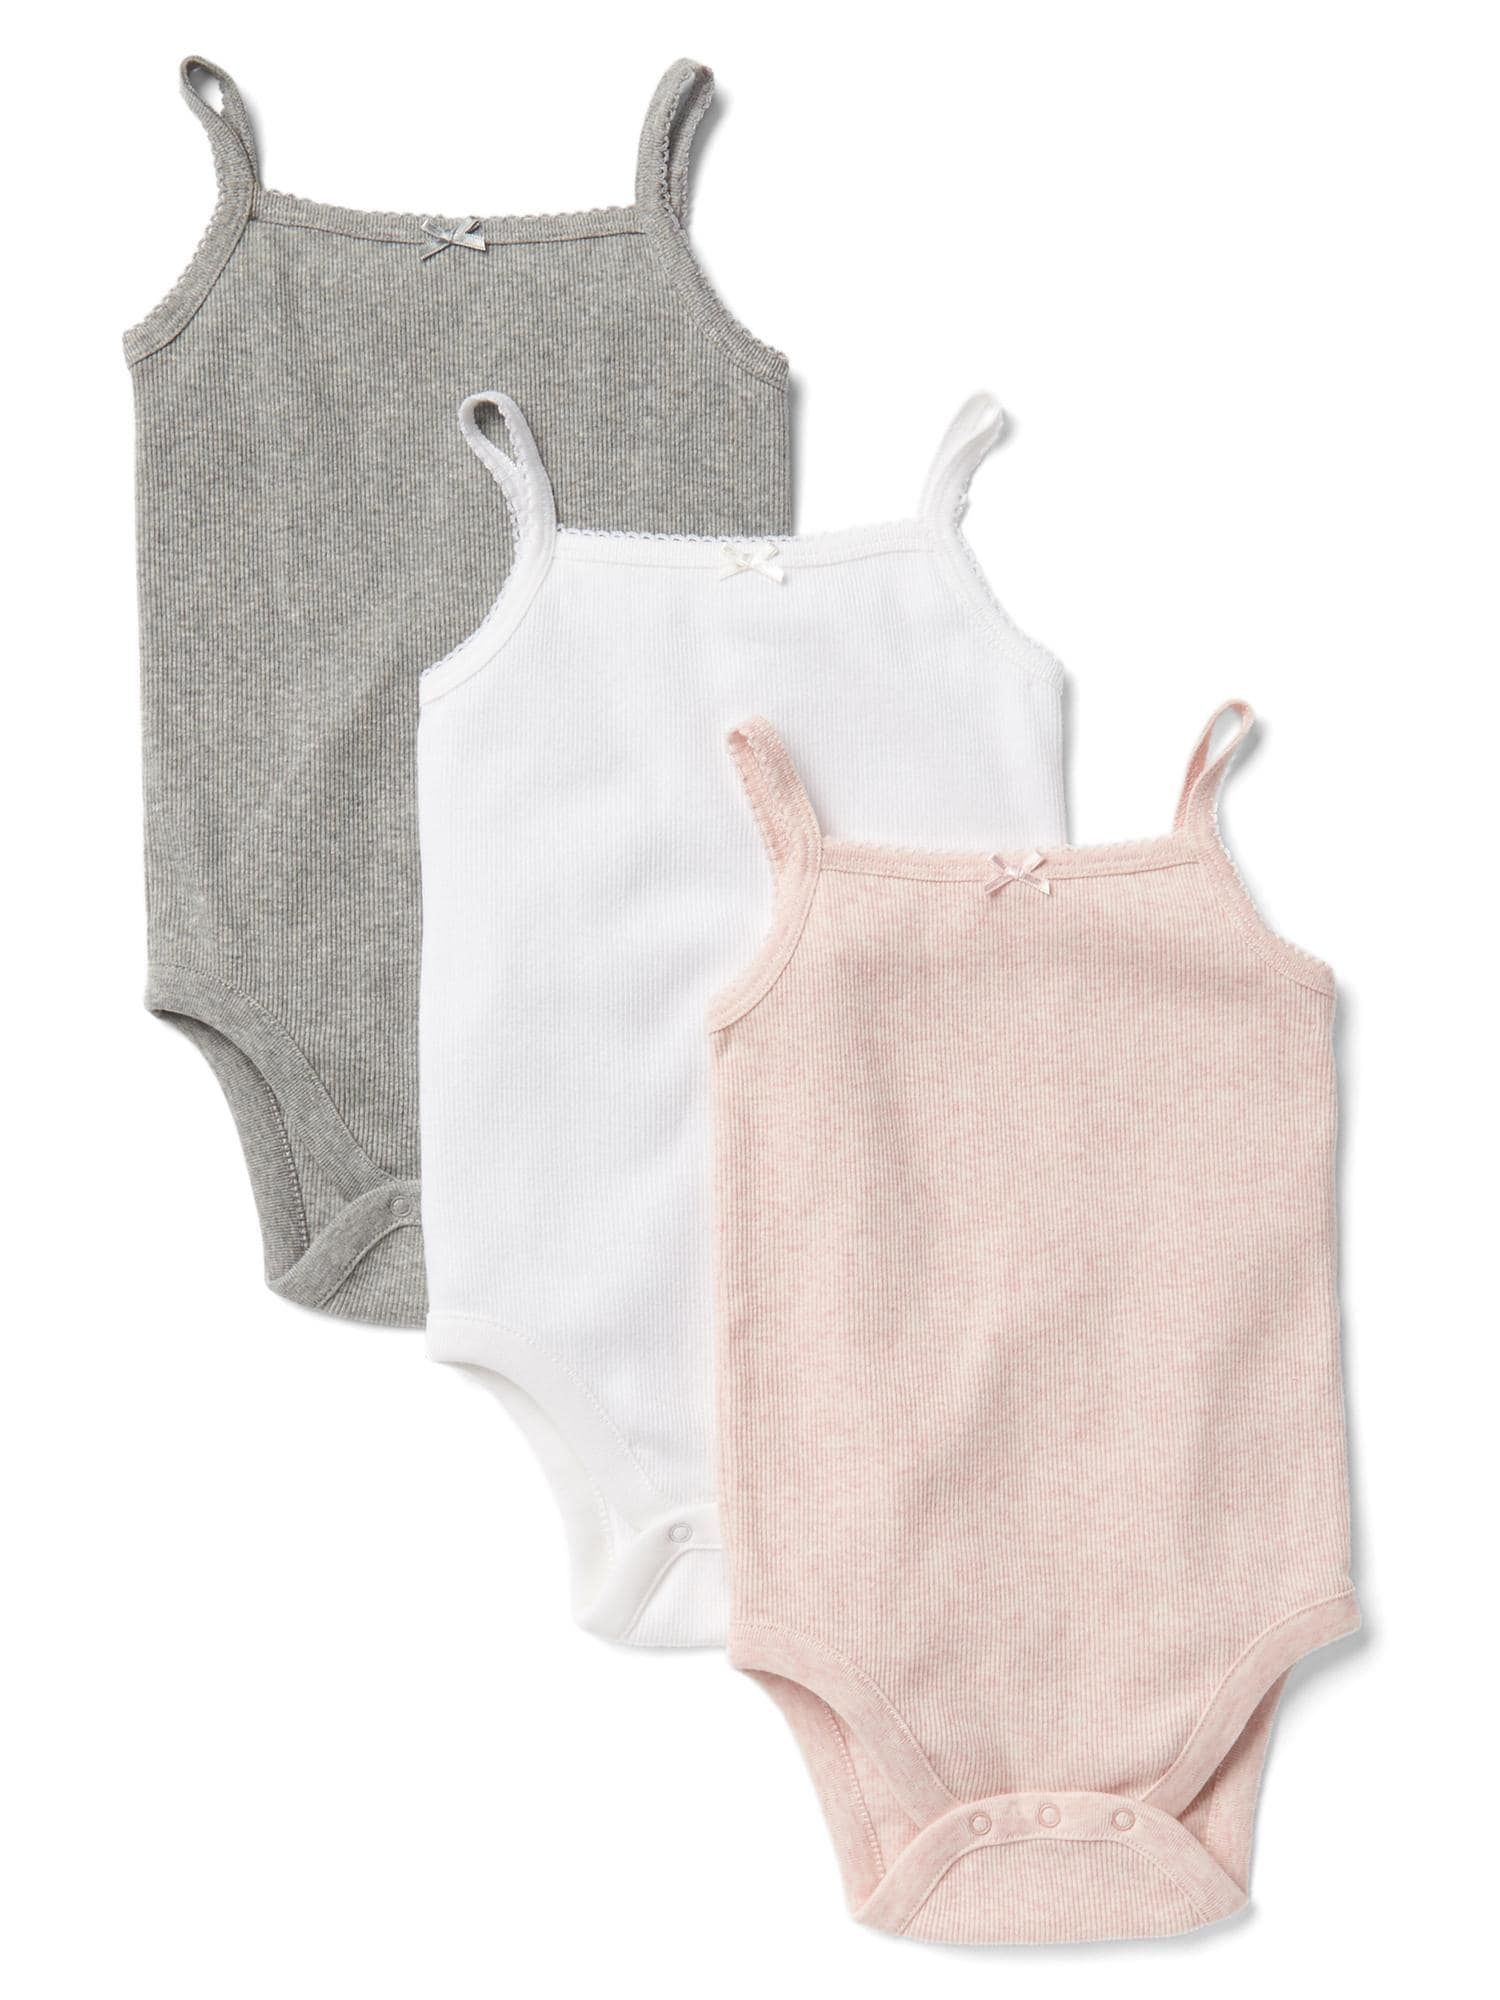 Gap Baby bodysuits for layering Baby Pinterest